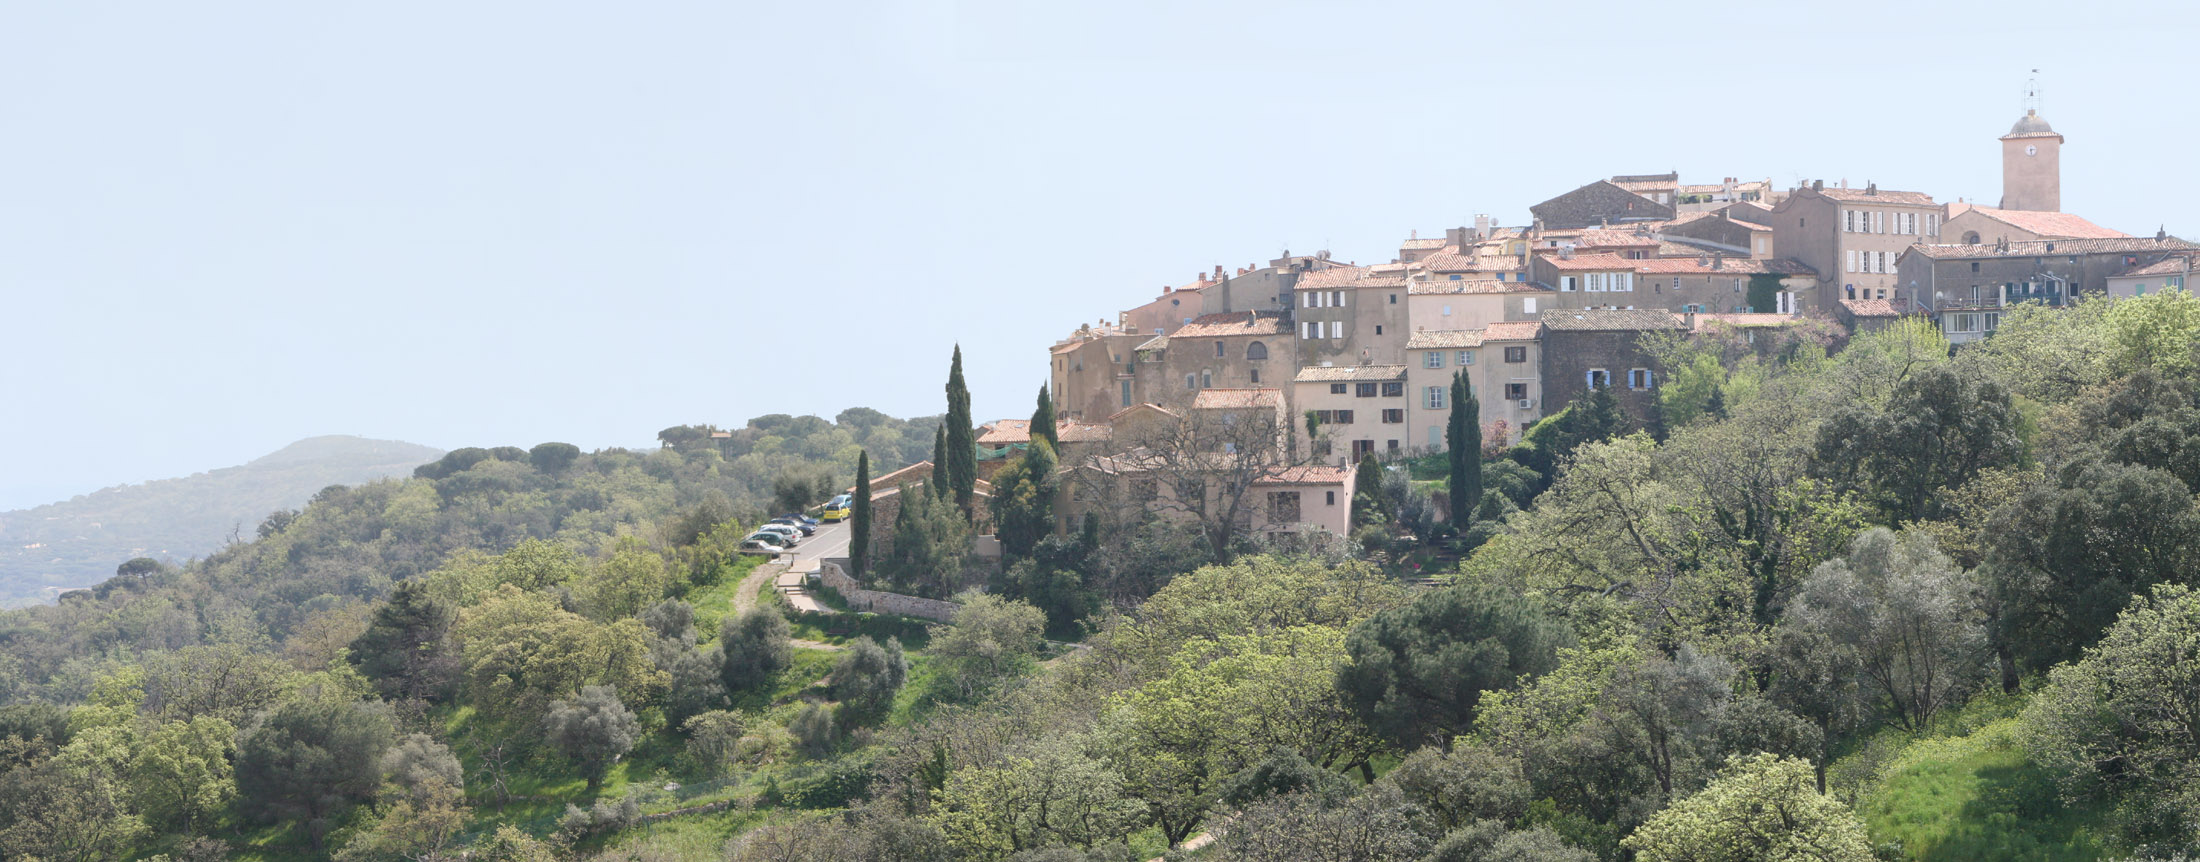 https://i0.wp.com/upload.wikimedia.org/wikipedia/commons/9/98/Ramatuelle_Panorama.jpg